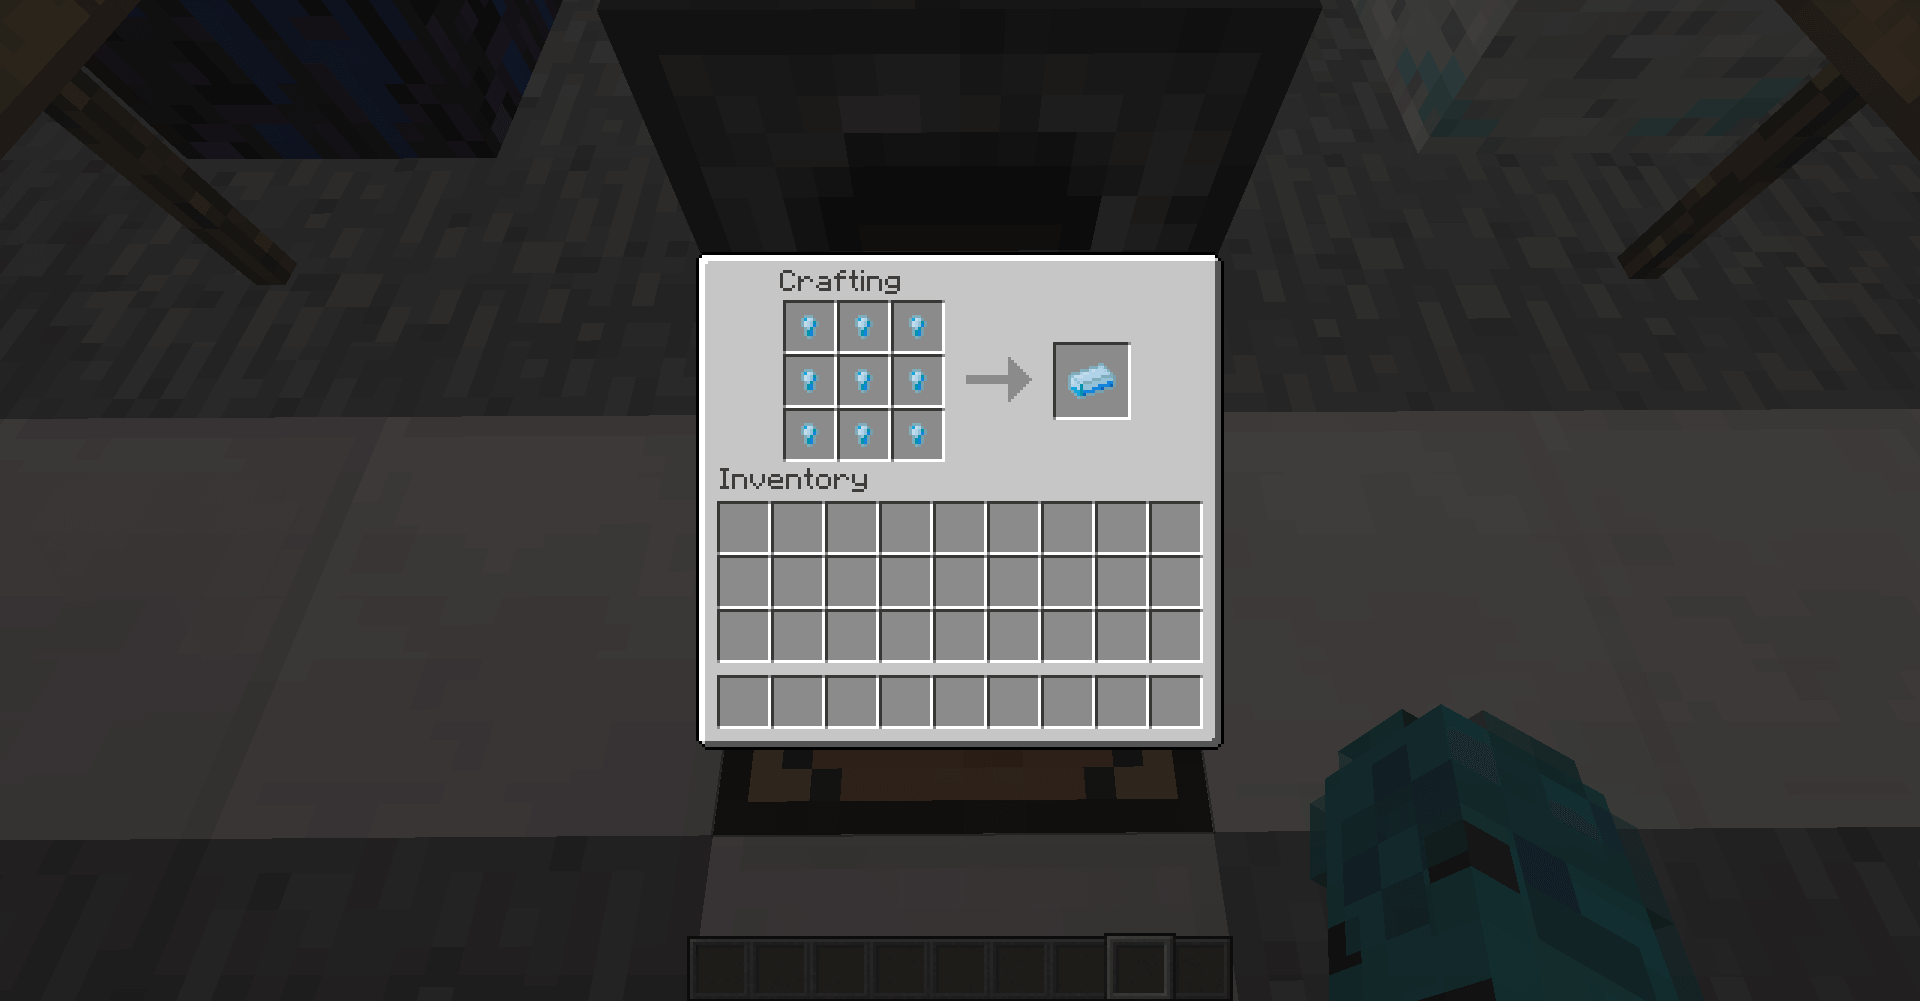 heaven-and-hell-mod-crafting-recipes-16.png